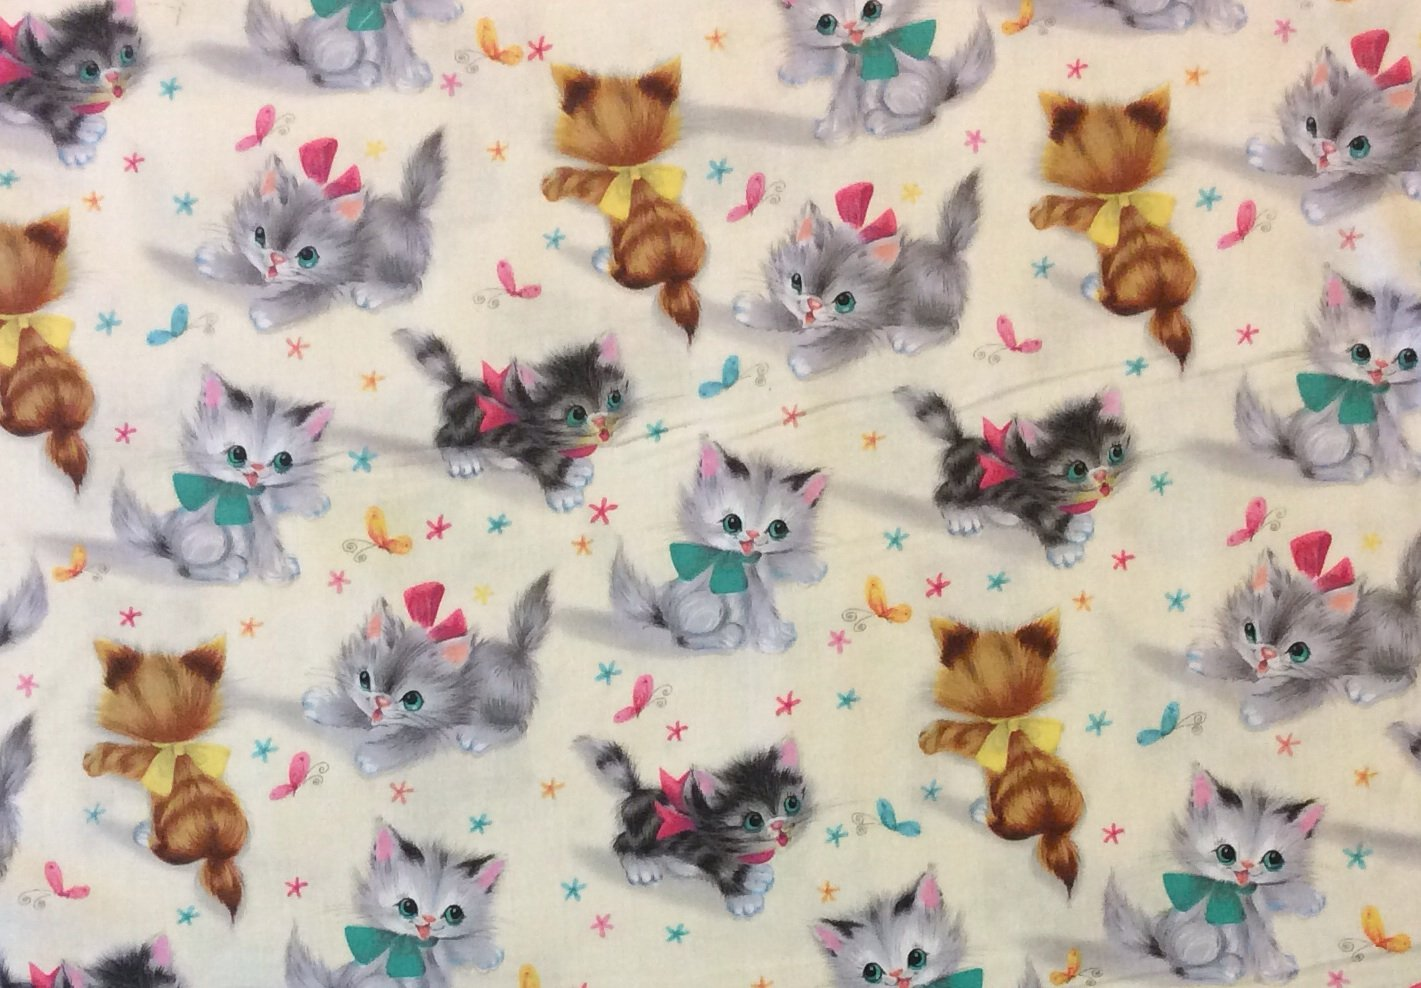 Kitty Cat Kittens Rare Retro Vintage Style Cotton Quilting Fabric MM78